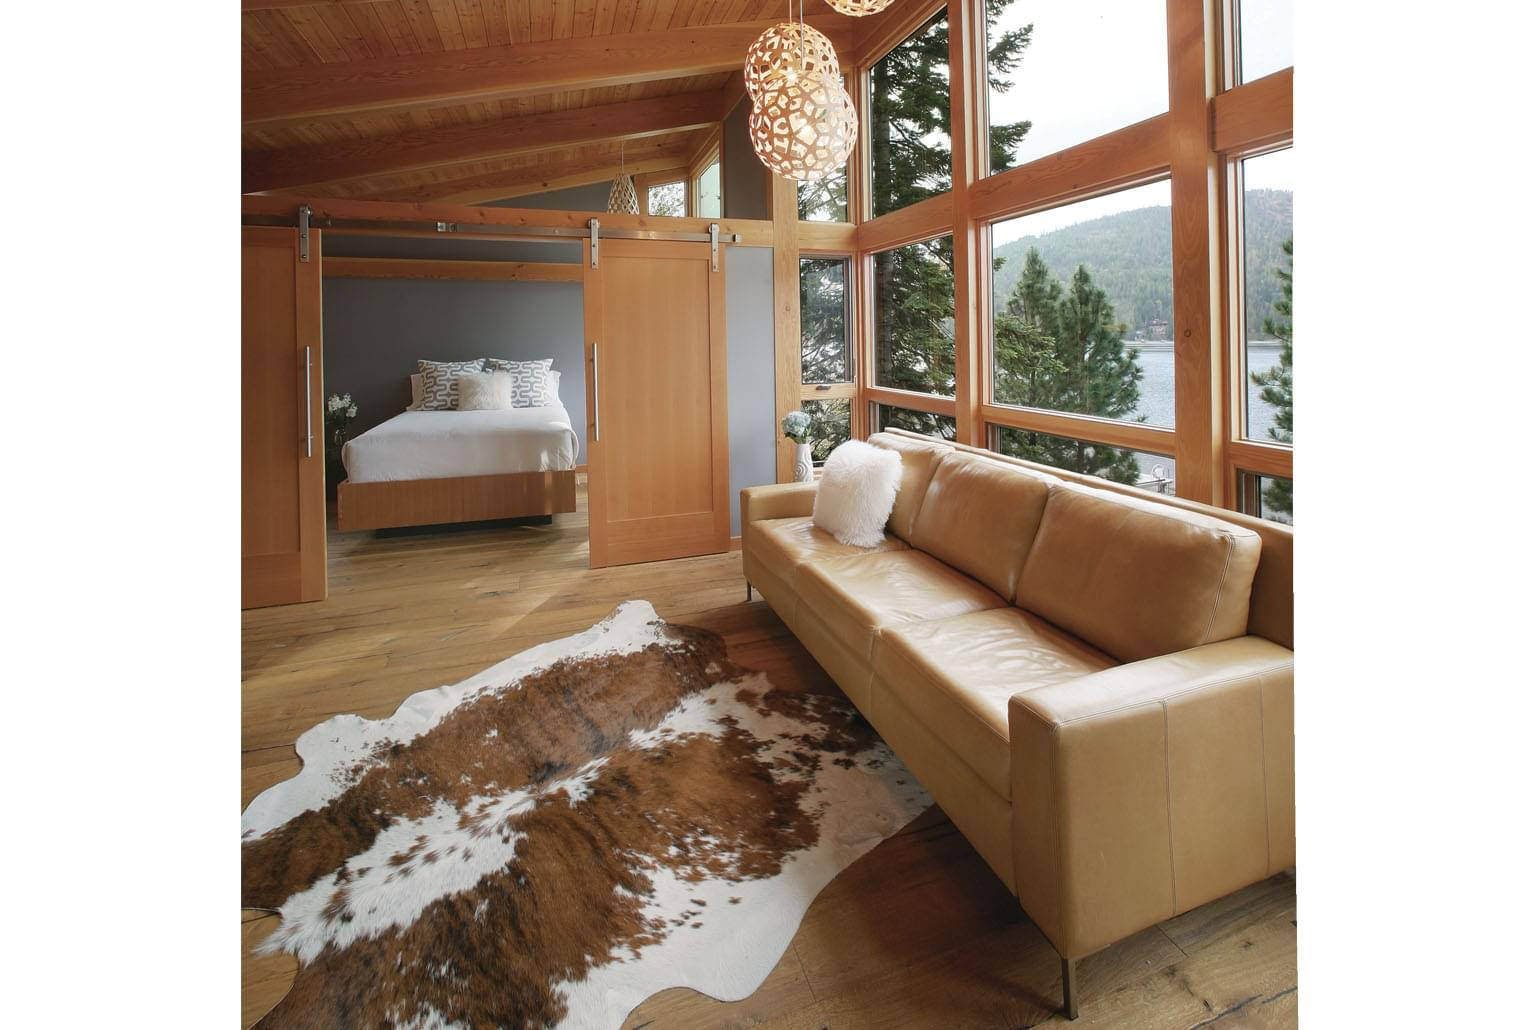 Best Small Home – Fine Homebuilding\'s 2015 HOUSES Awards